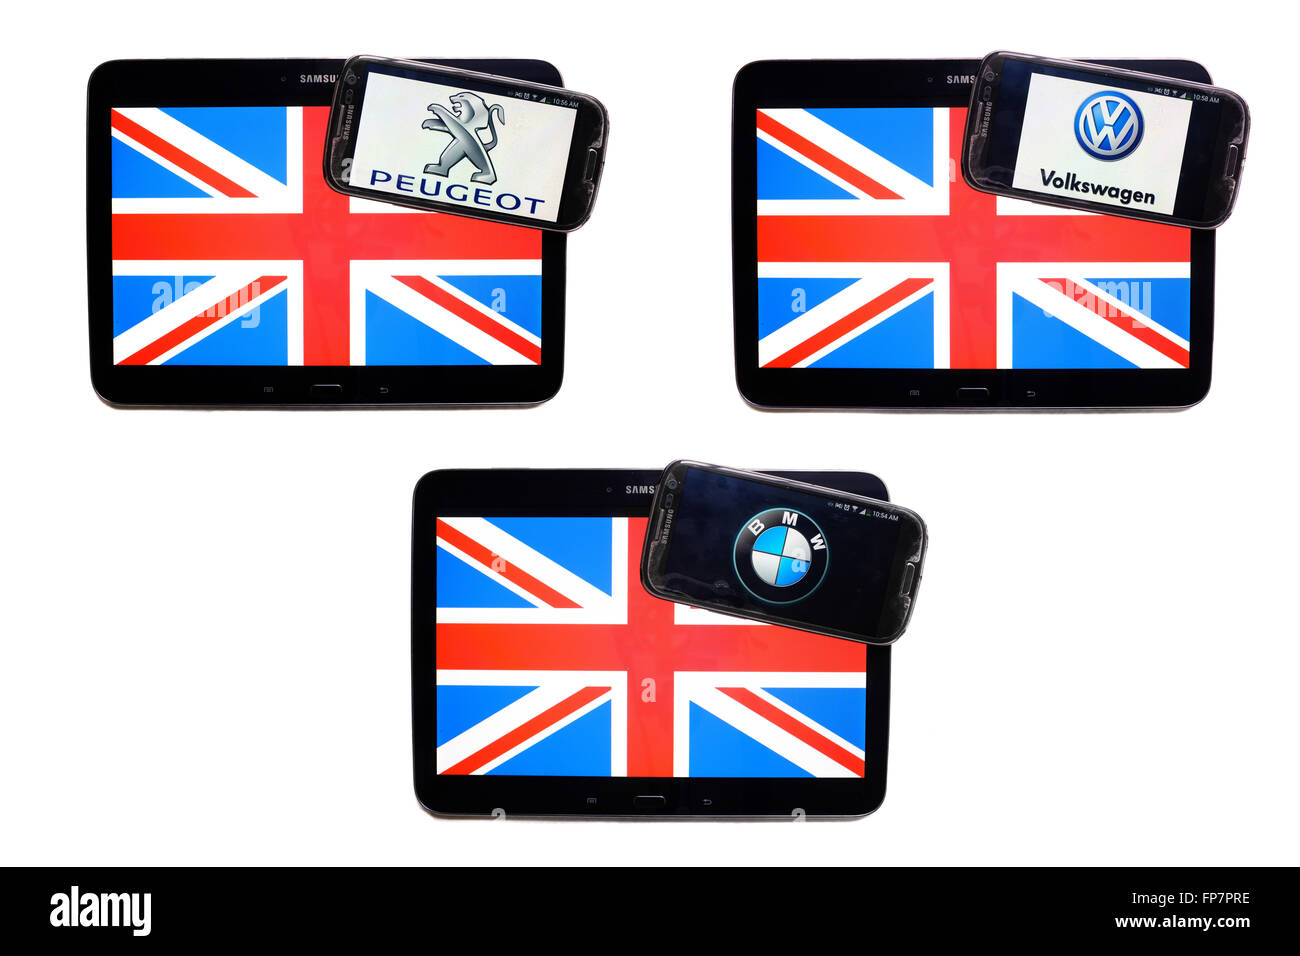 The logos of European companies on the screens of smartphones displayed on top of Union Jacks. - Stock Image